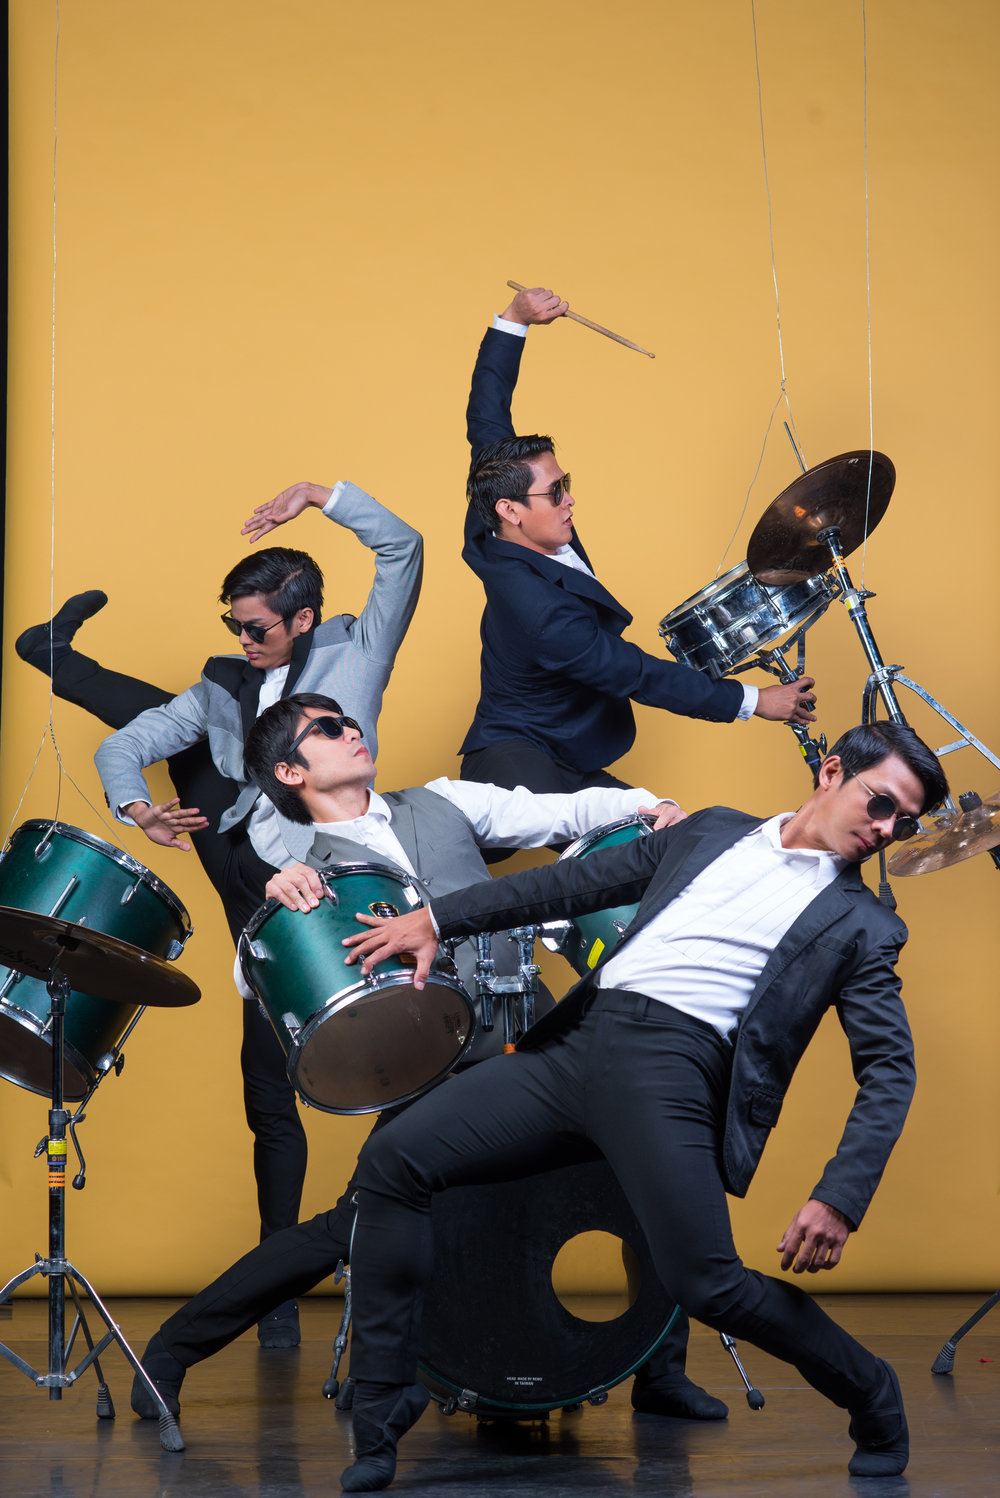 Principal dancers (clockwise from front) Gerardo Francisco, Romeo Peralta, Elpidio Magat and Rudy De Dios channel the Beatles for a photo shoot for  The Winding Road . Photo by Jojit Lorenzo